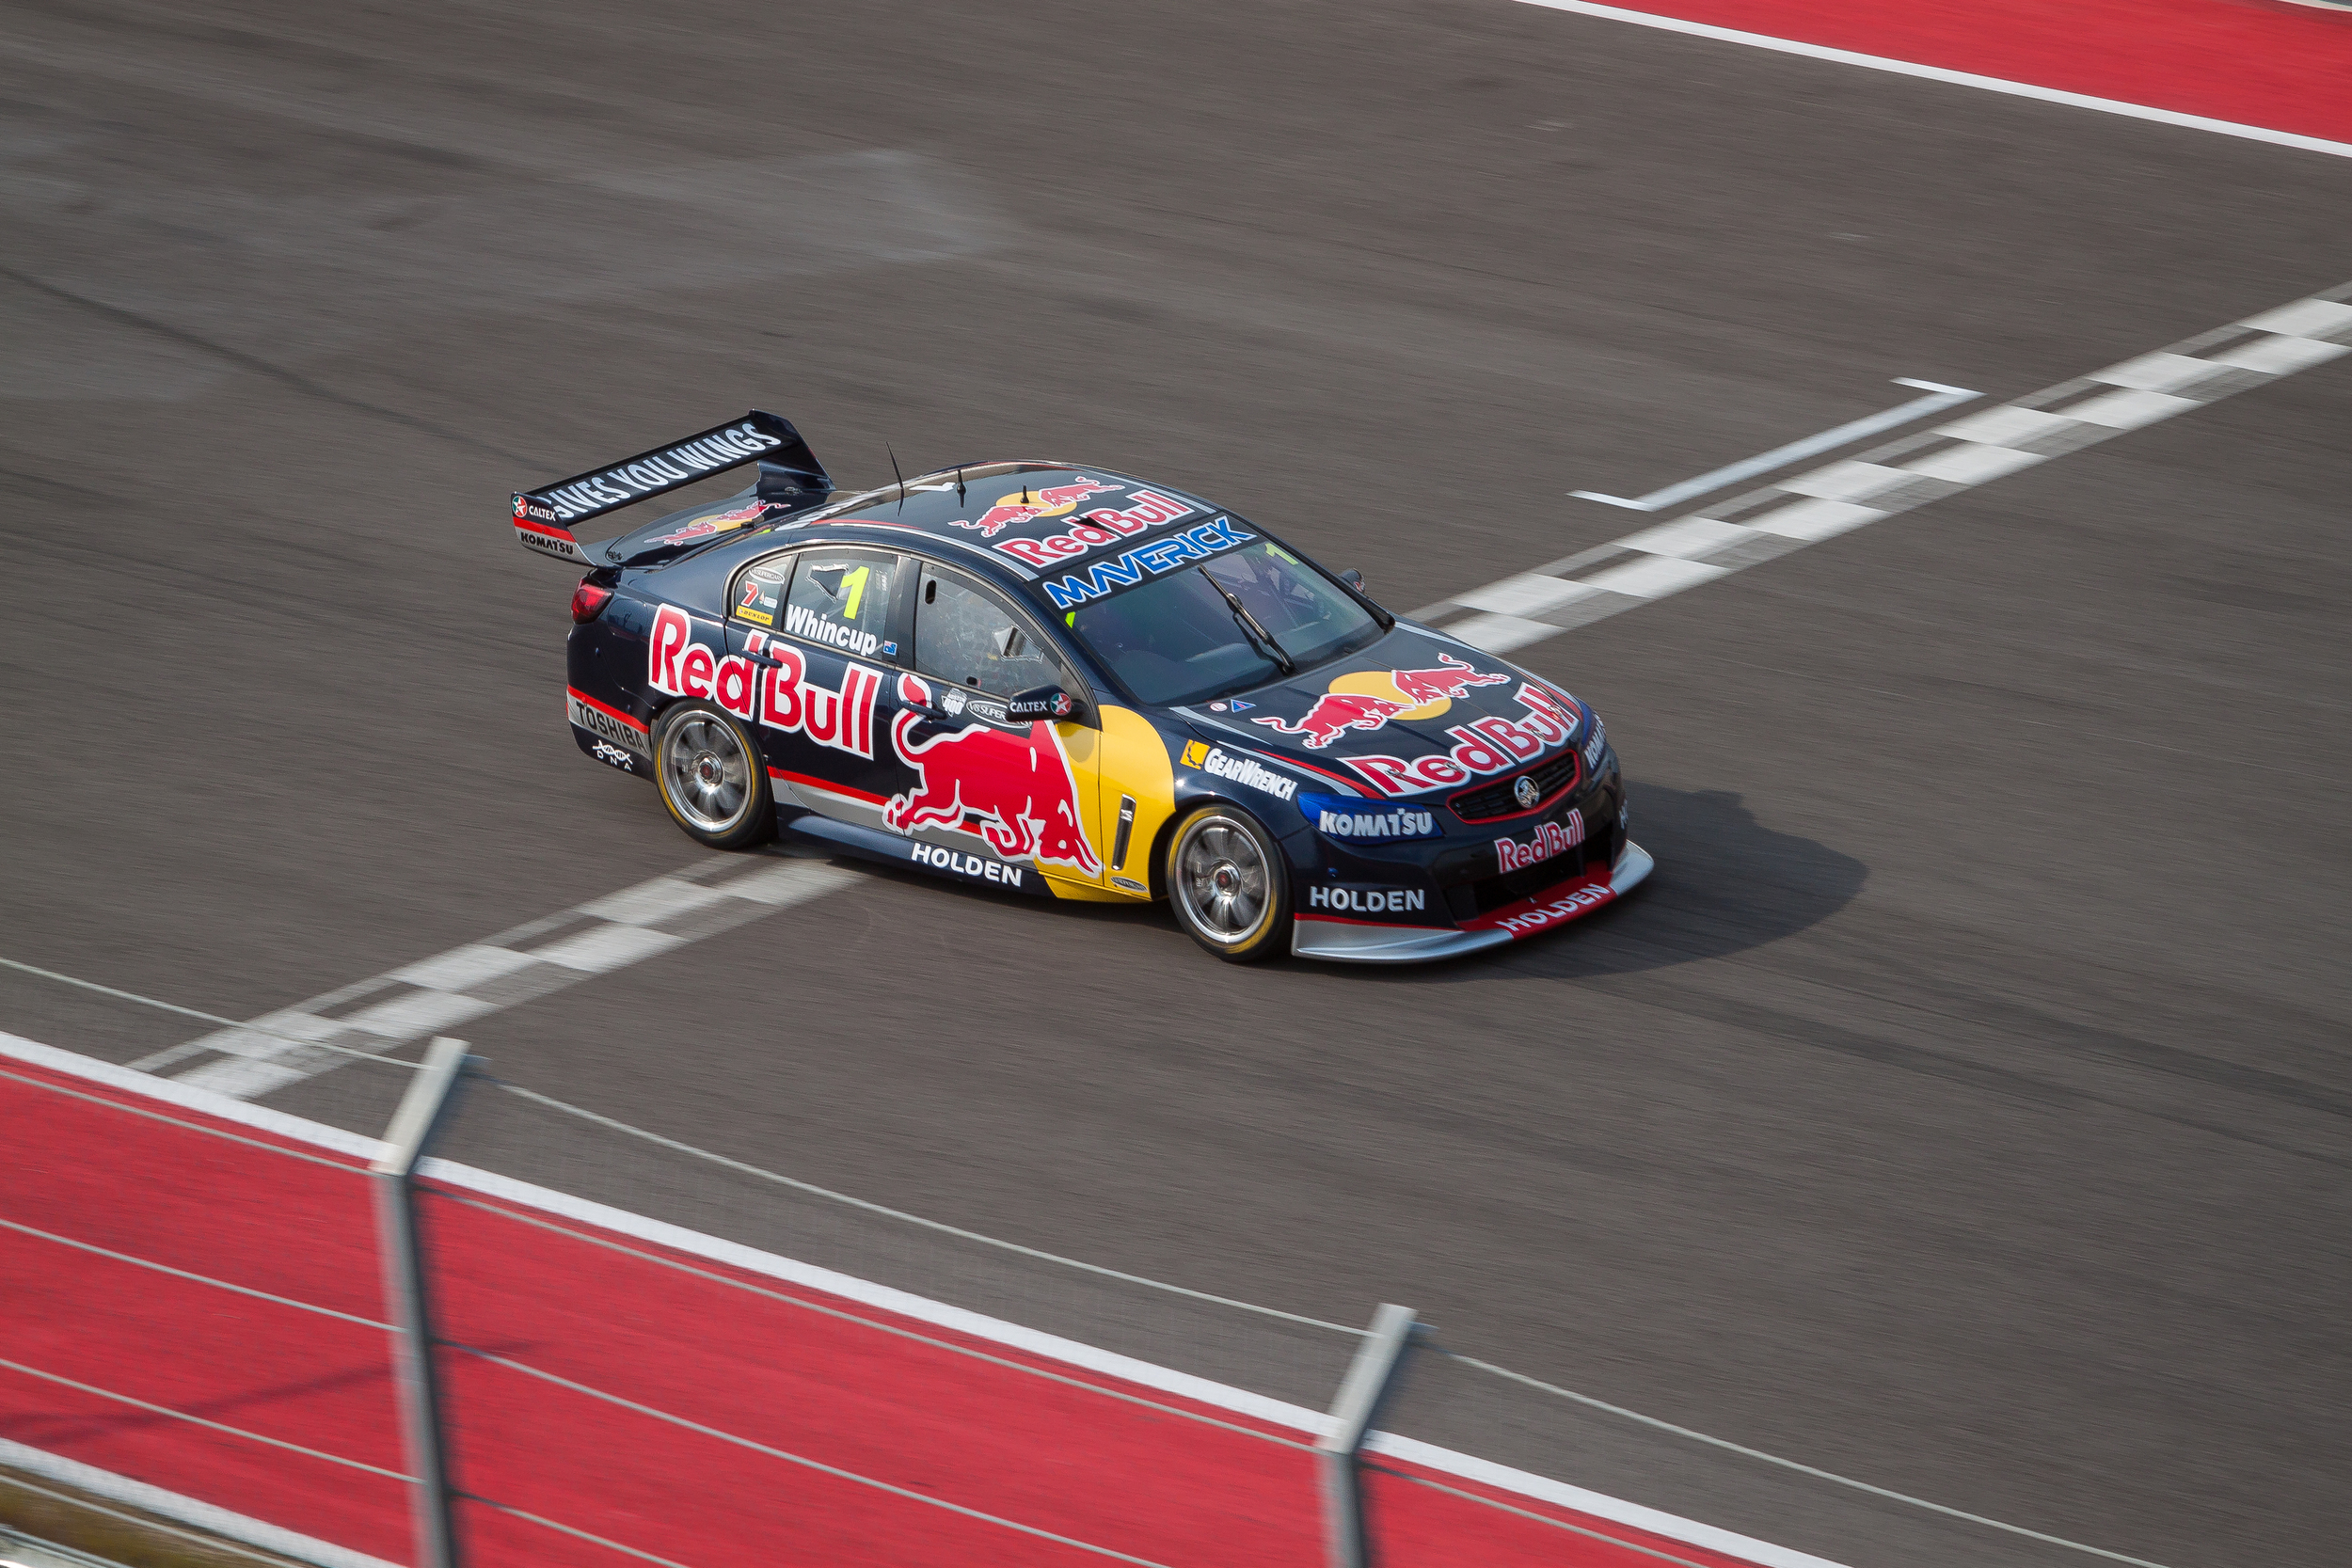 Whincup taking the checkered for The Austin 400 at Circuit of the Americas Race Track in Austin, Texas.